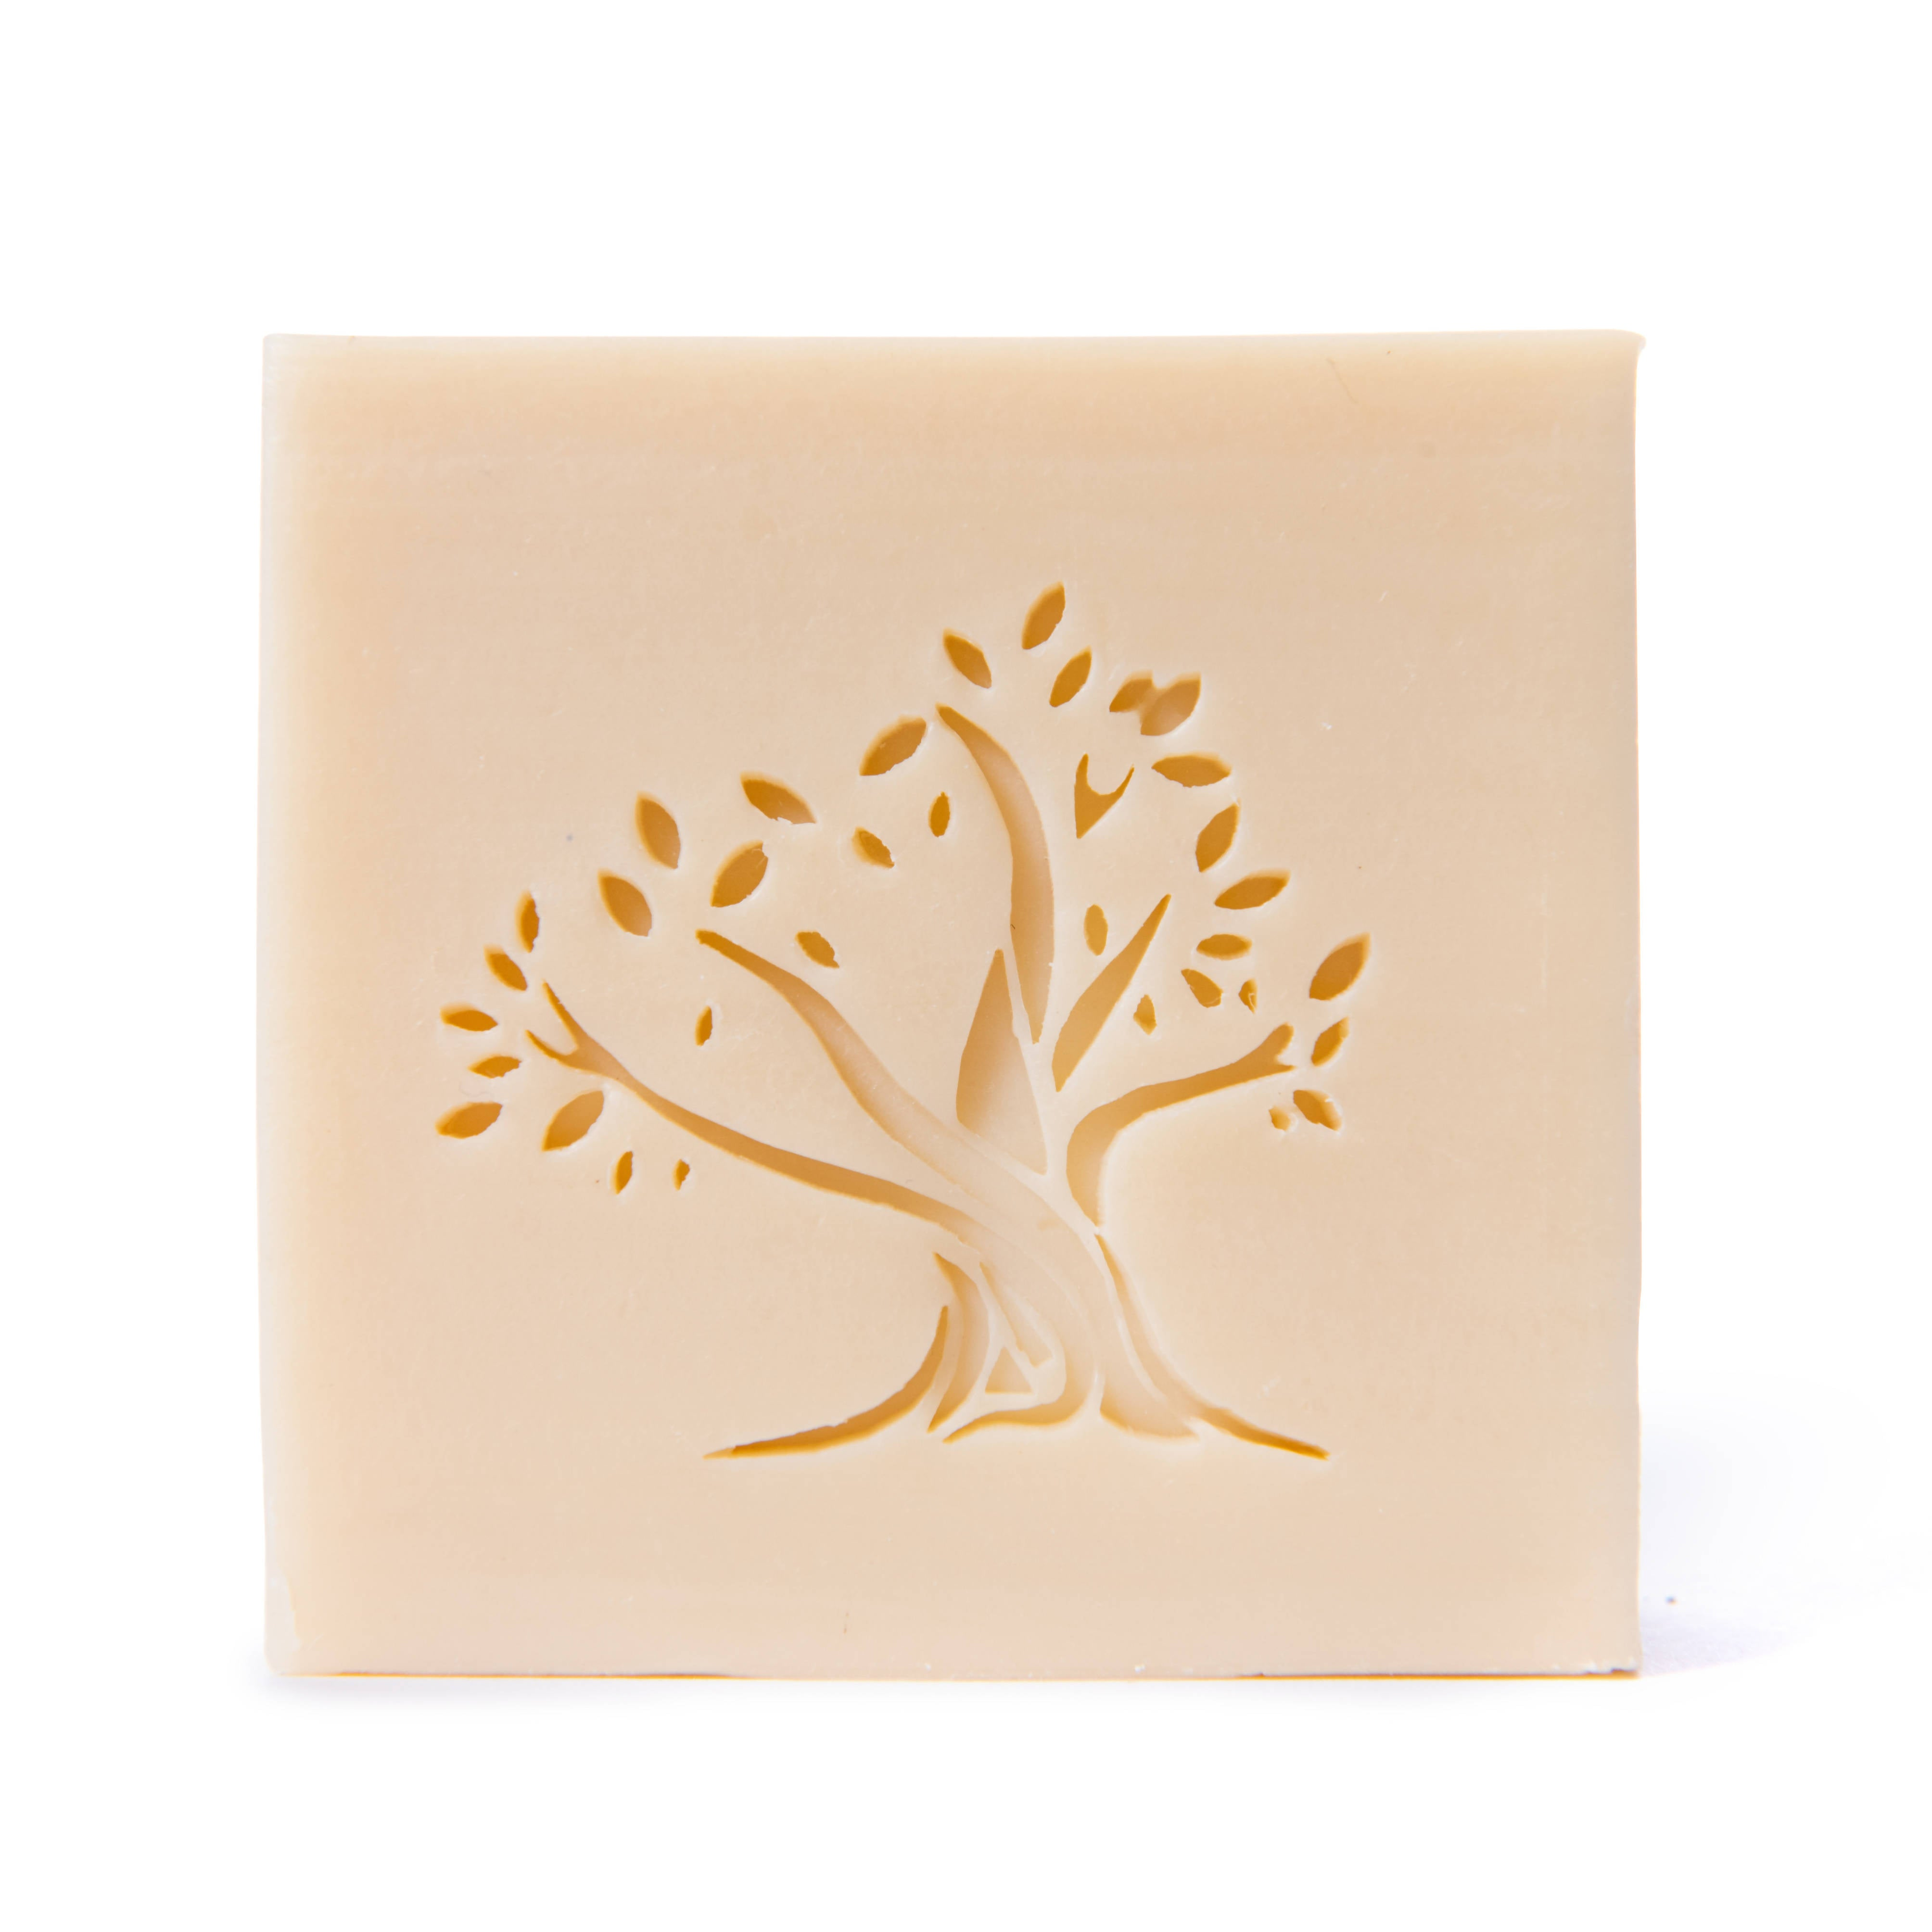 Hand Stamped artisanal soap luxury item